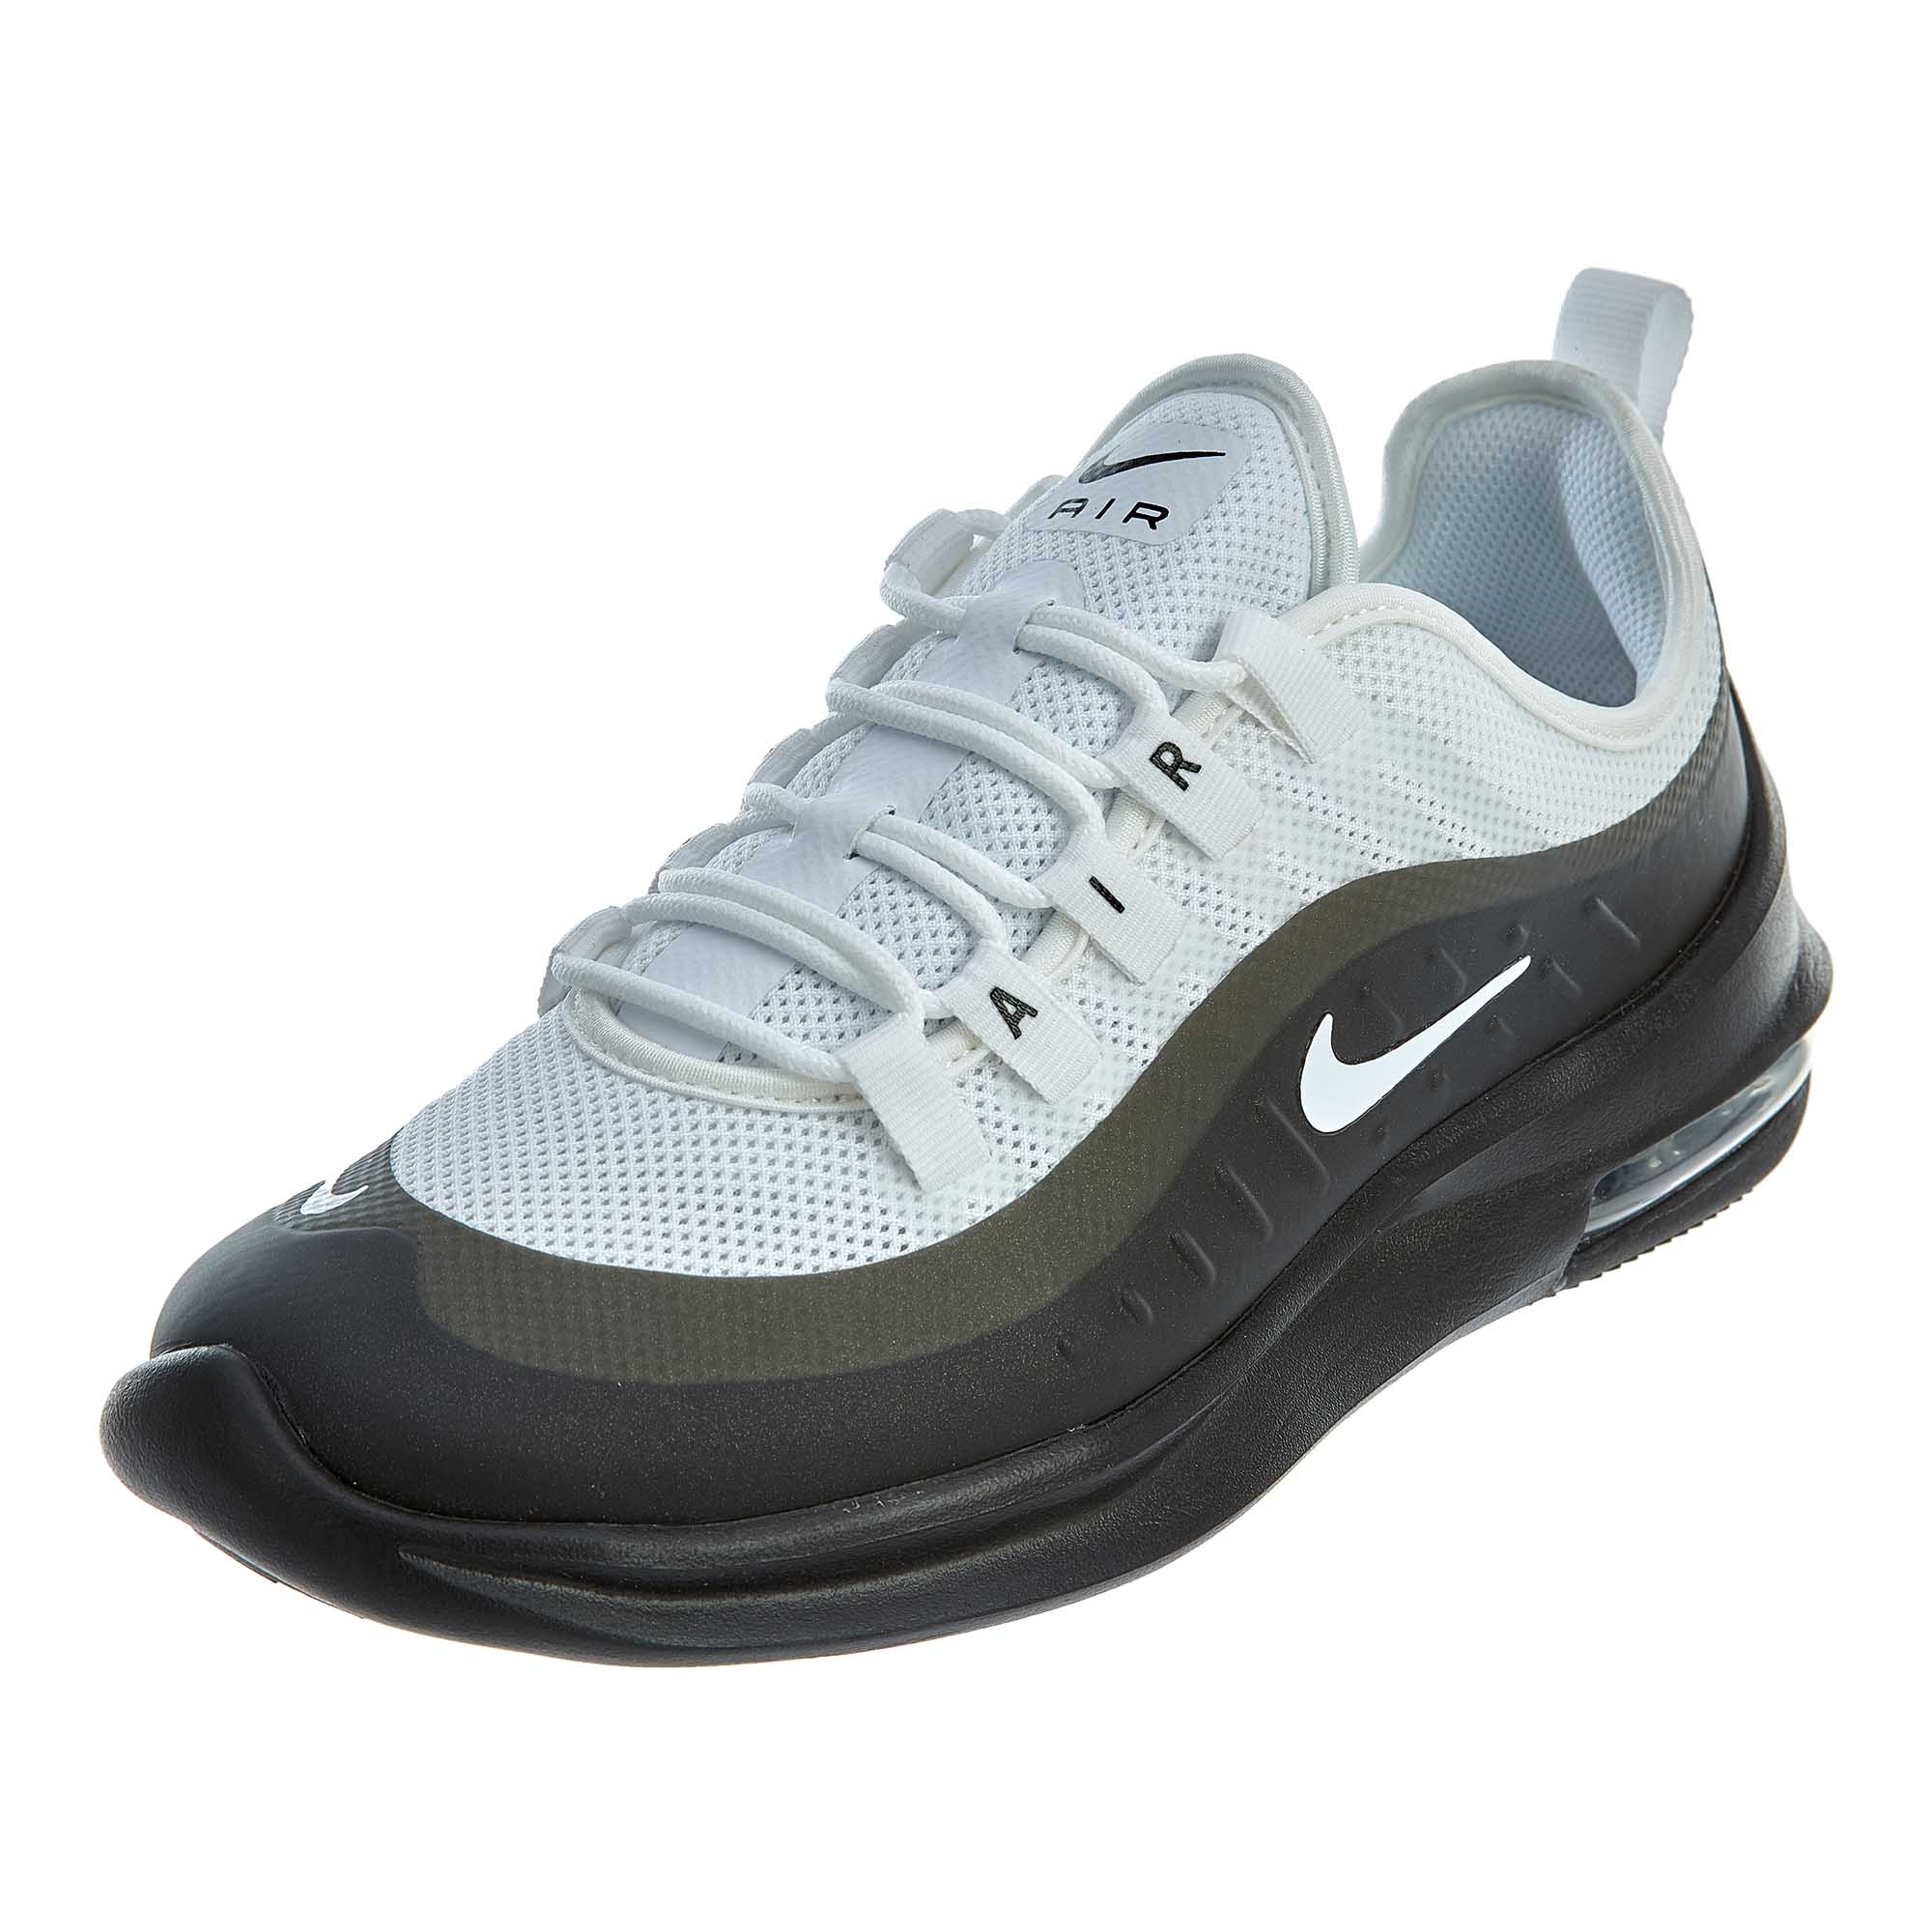 premium selection 30502 ff725 Details about Nike Womens Air Max Axis Running Shoes AA2168-004